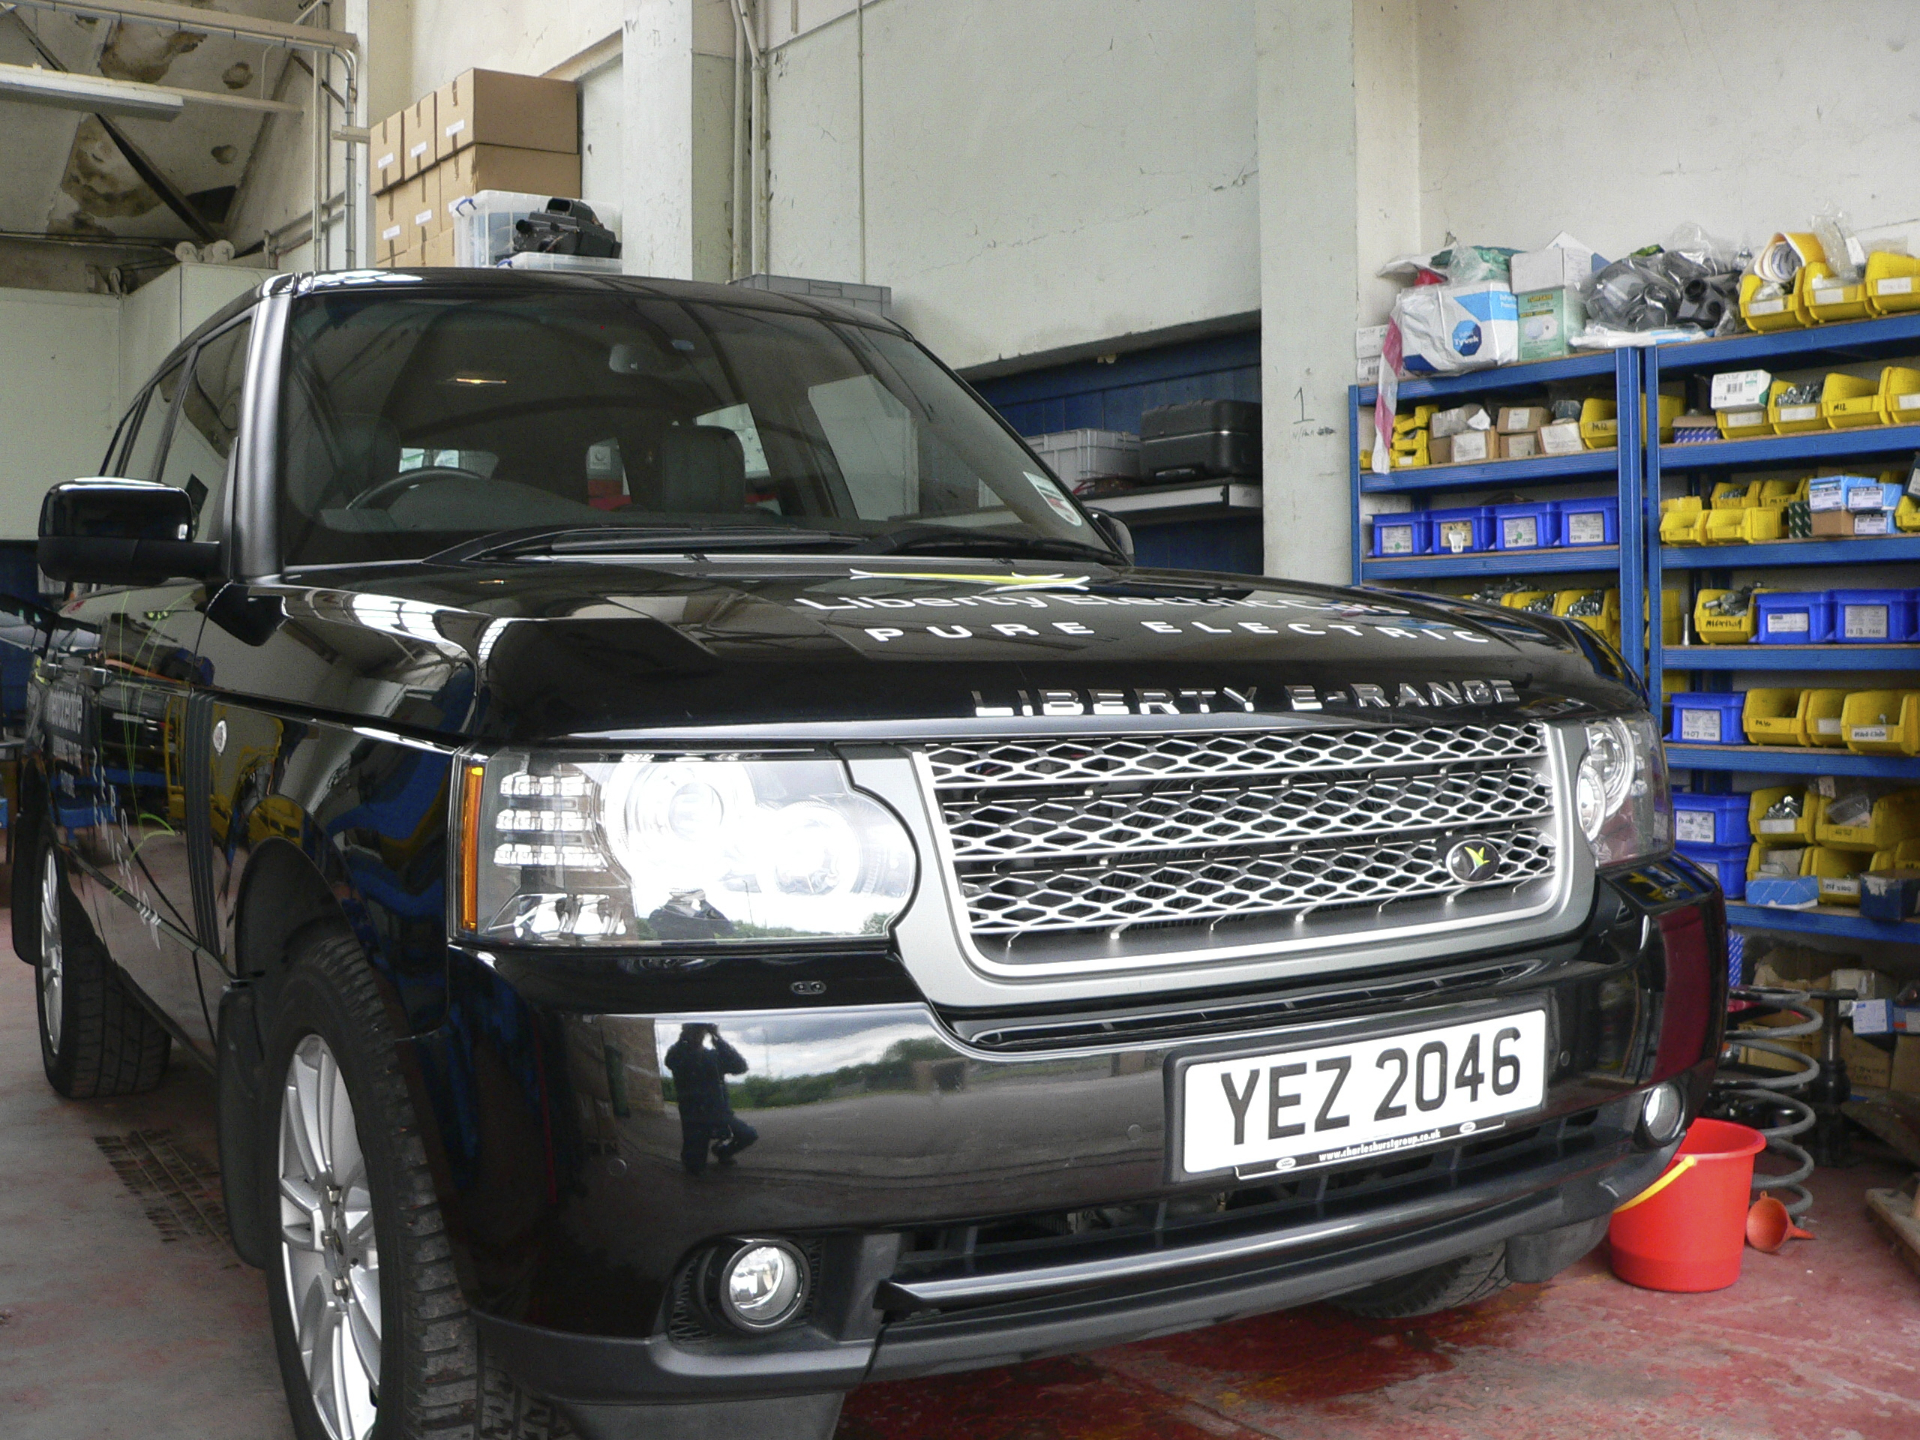 First Drive Report 2011 Liberty E Range Electric Range Rover